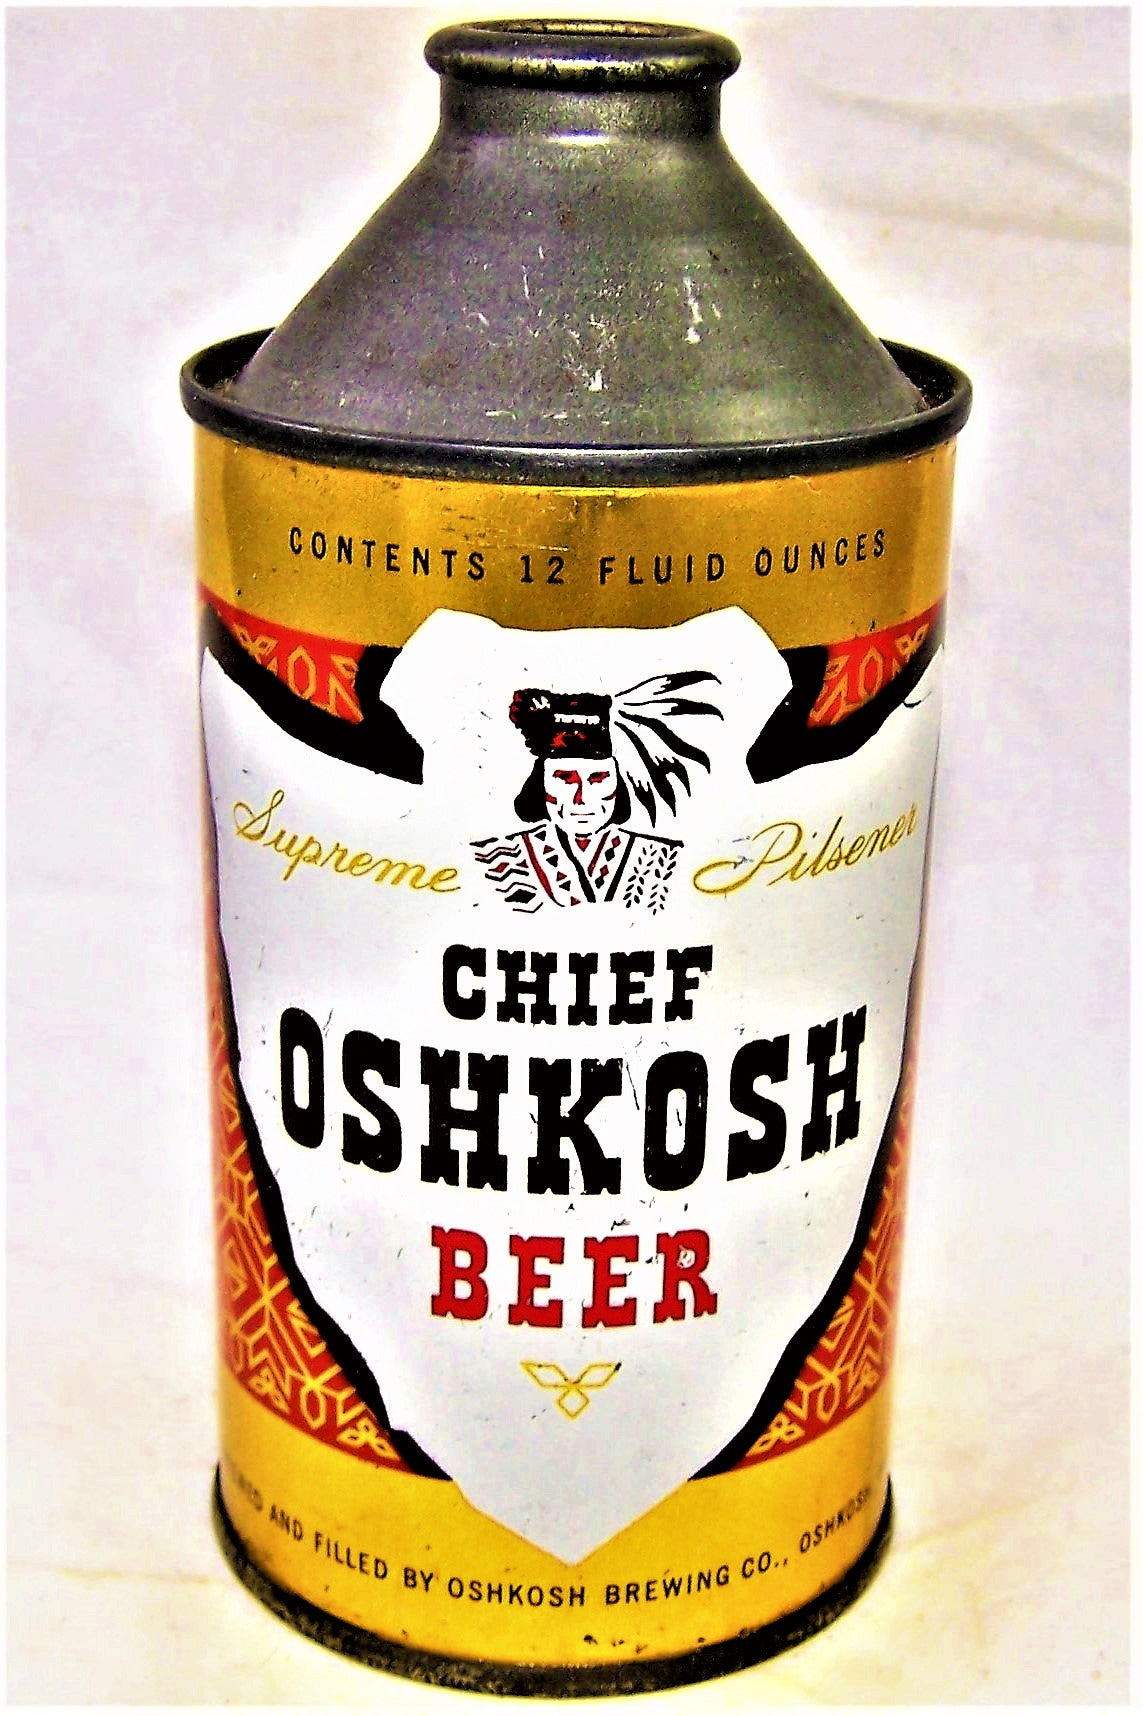 Chief Oshkosh Beer, USBC 157-19, Grade 1 to 1/1+ Sold on 03/07/19